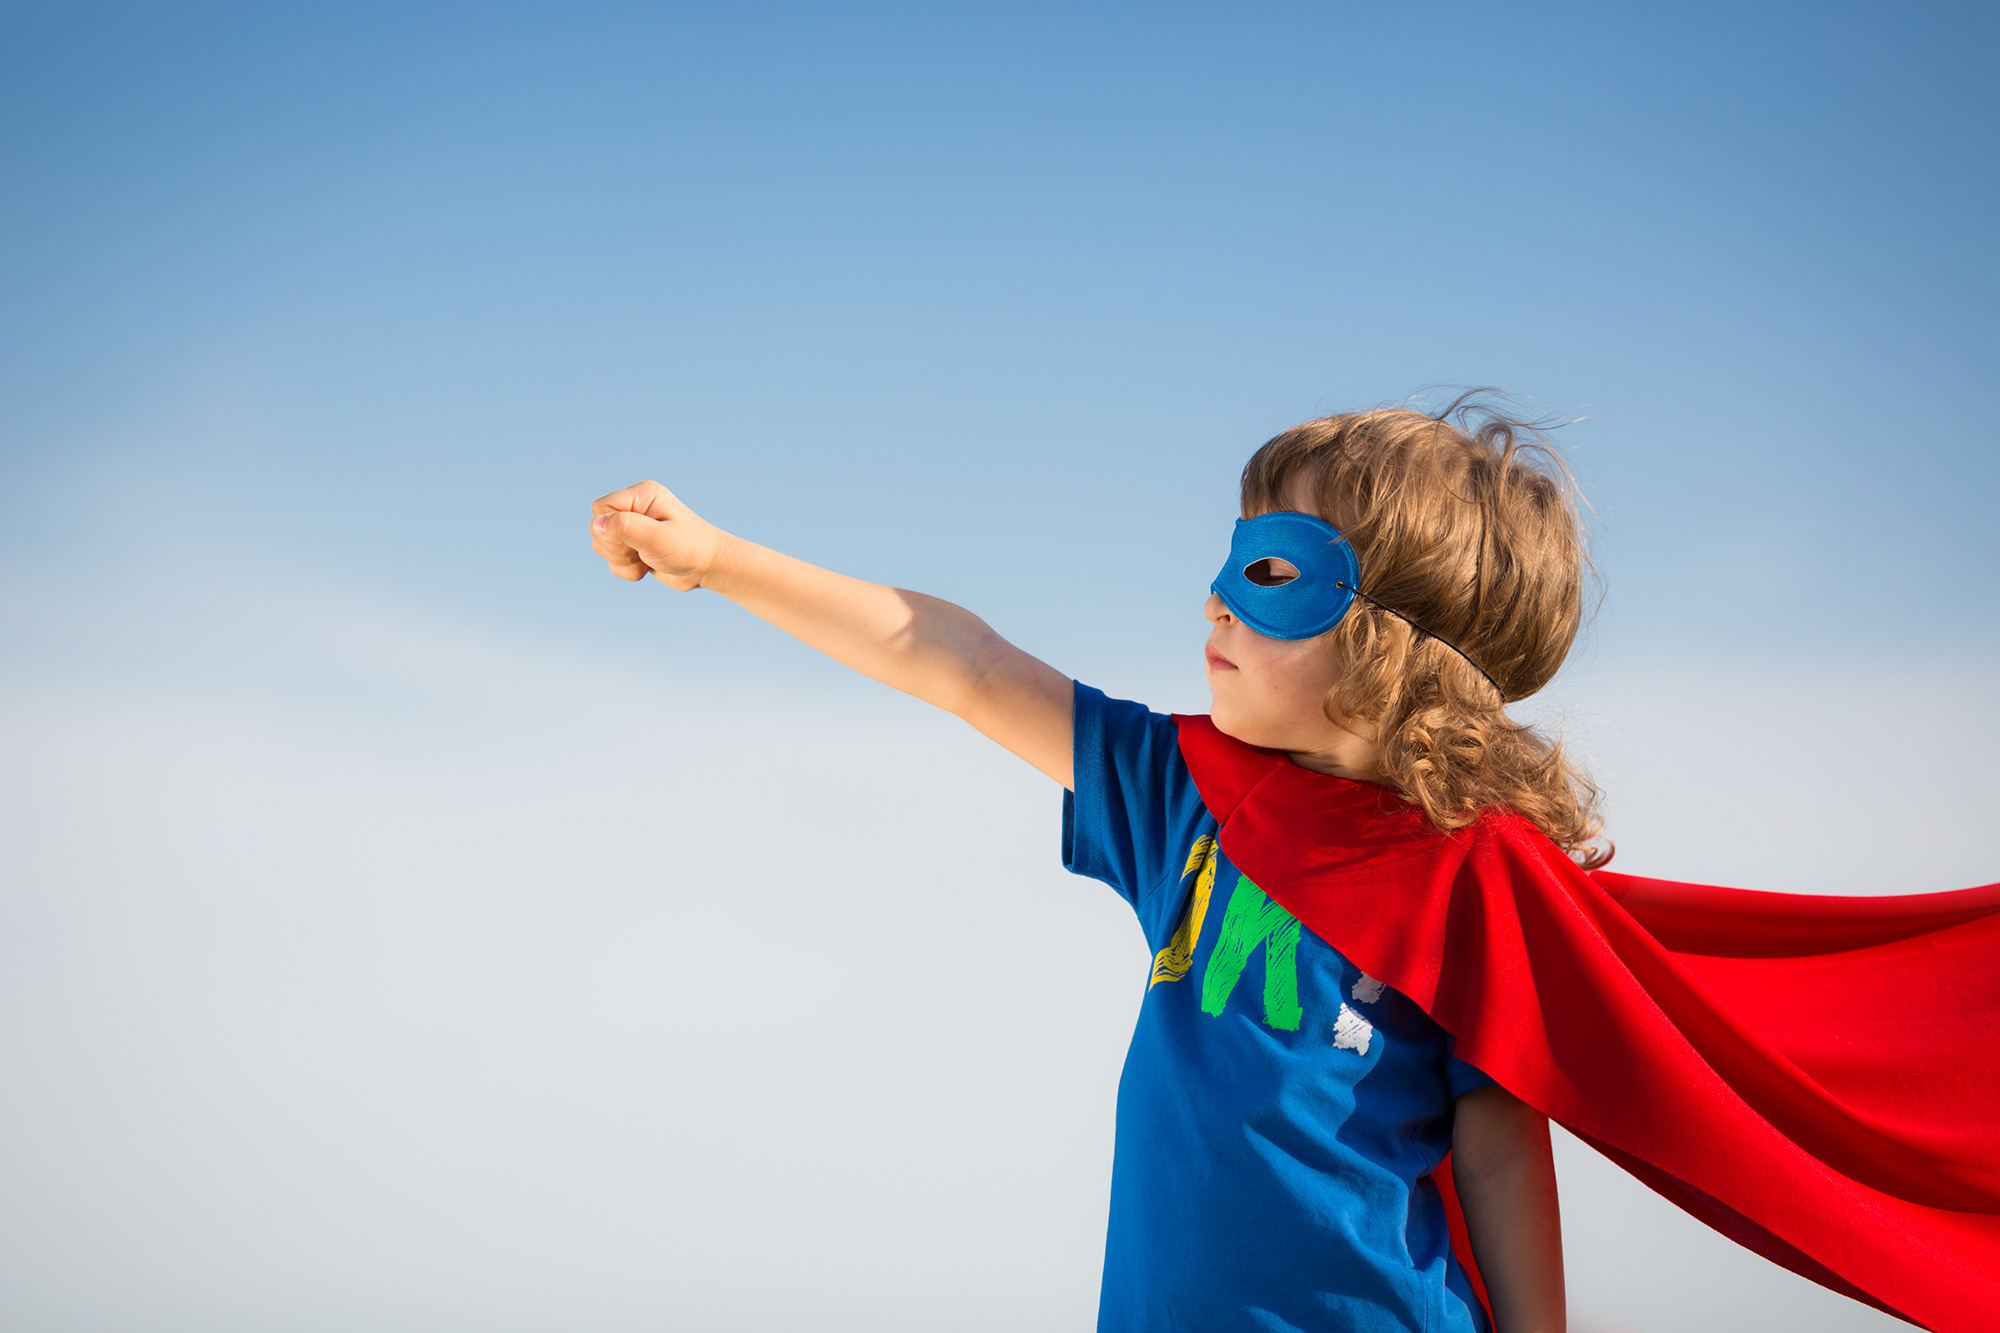 Small child with mask and cape, arm is stretched upwards and hand in a fist